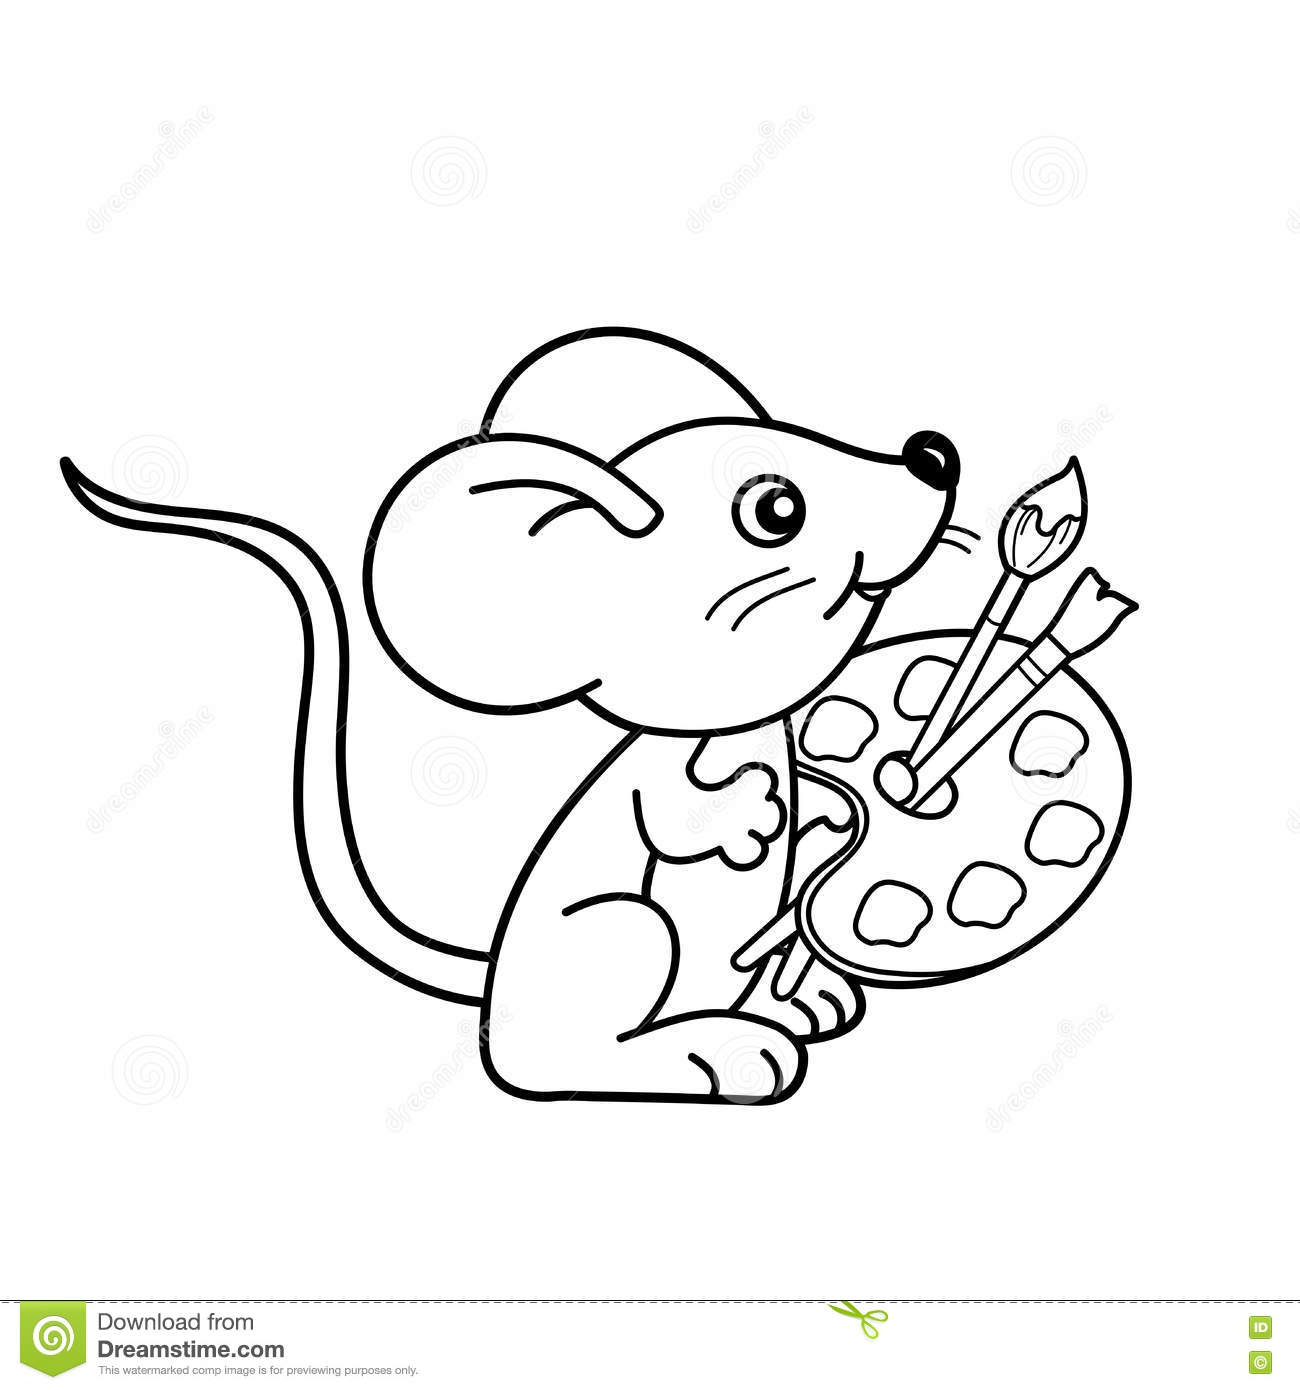 1300x1390 Coloring Page Outline Of Cartoon Little Mouse With Brushes And